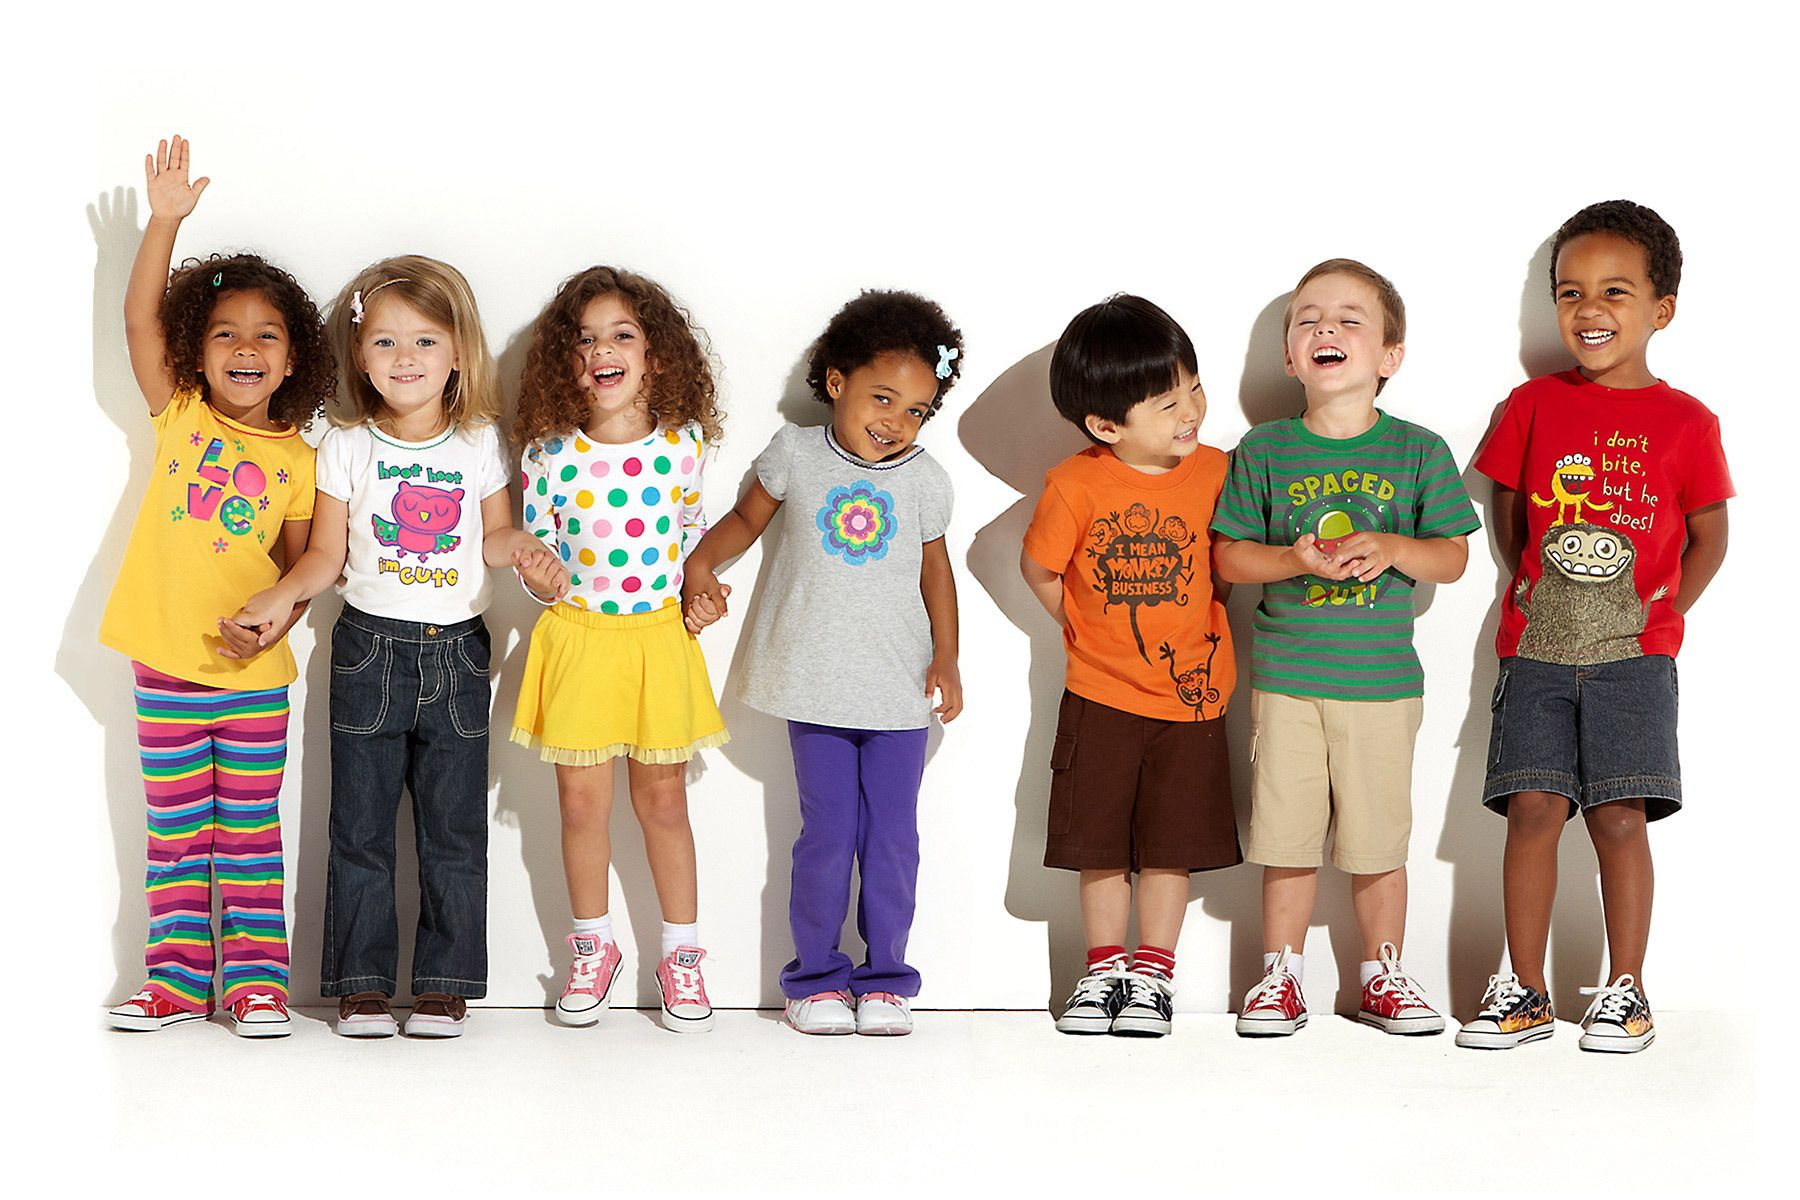 group of Kids, childrens, fashion apparel photographer los angeles ...